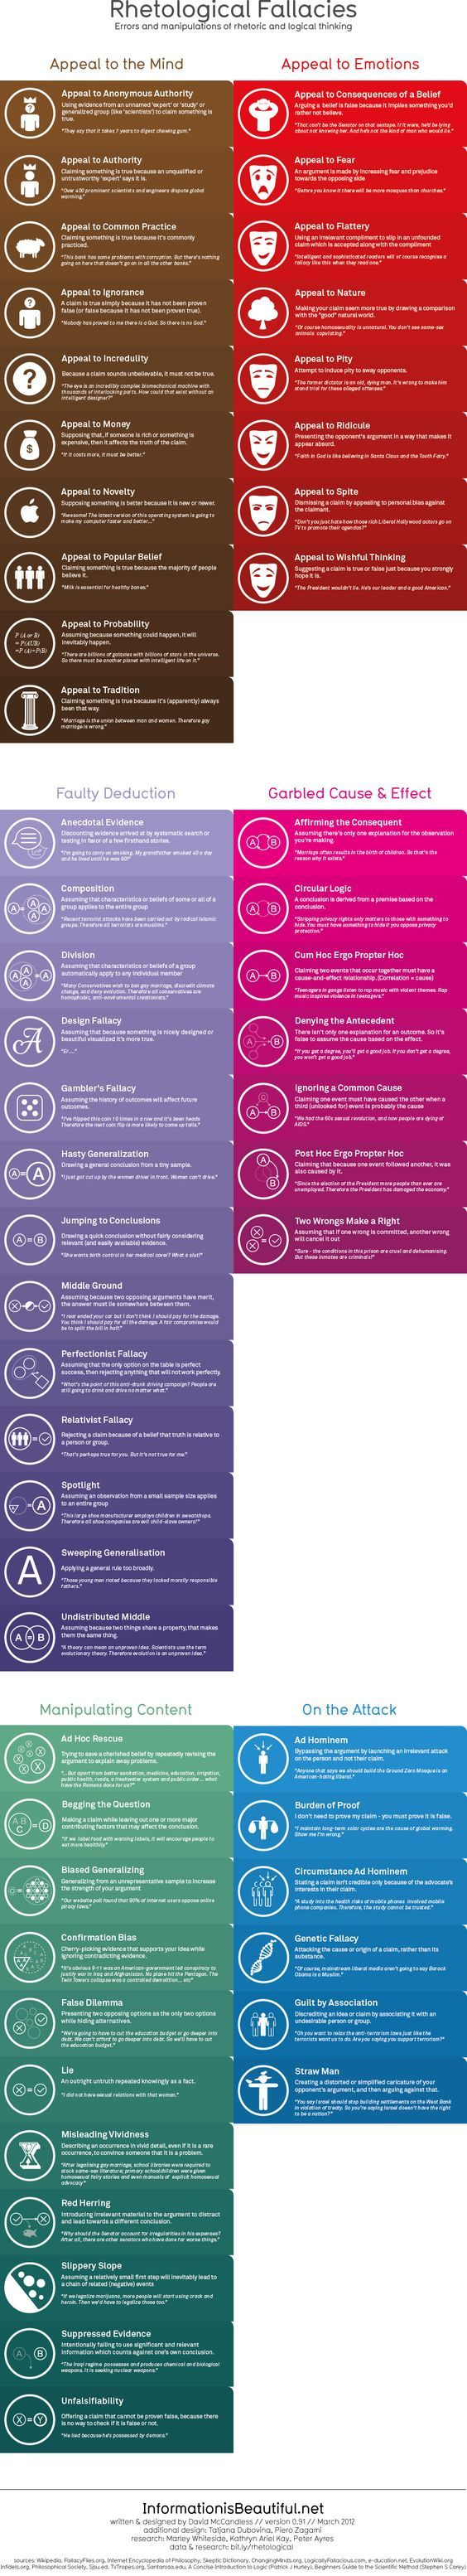 "[Infographic] Rhetological Fallacies - Rhetorical and Logical Fallacies: ""A brain-blending categorisation and visualisation [sic] of errors and manipulations of rhetoric and logical thinking. How many do you use?"":"